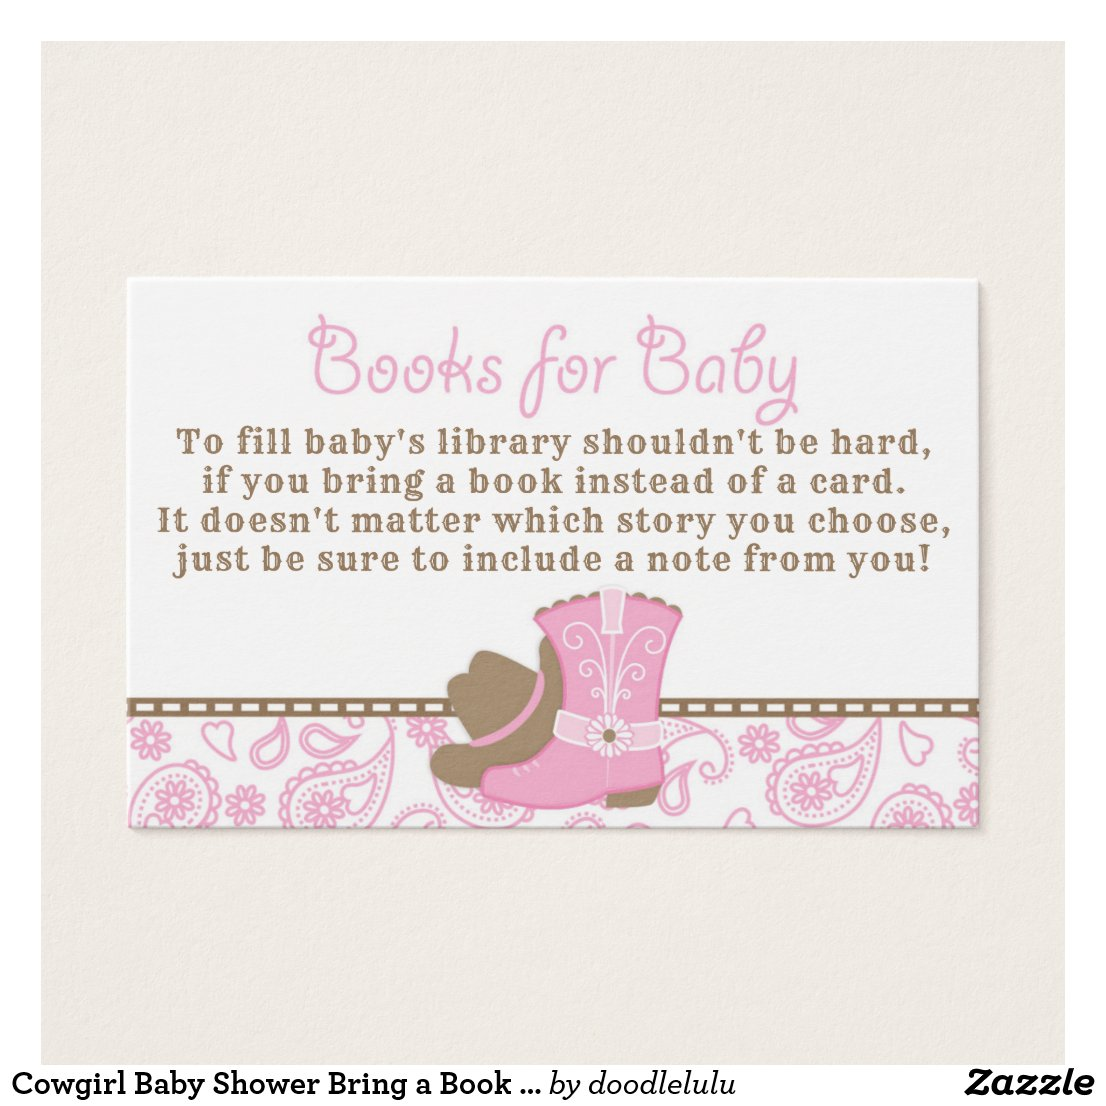 Cowgirl Baby Shower Bring a Book Request Card